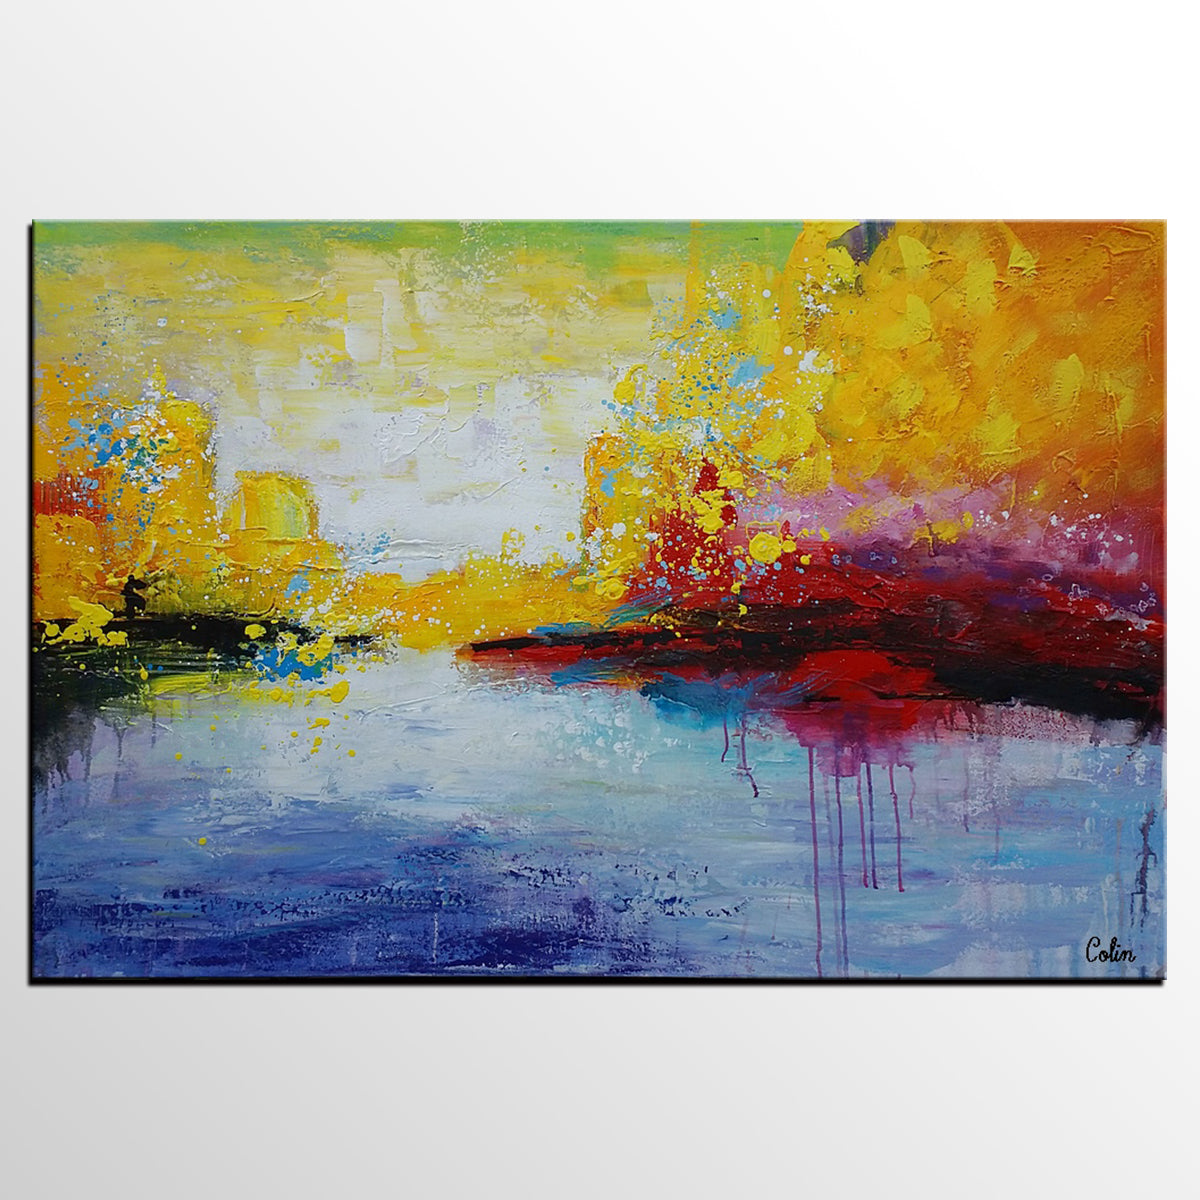 Canvas Wall Art, Abstract Painting, Large Art, Canvas Art, Wall Art, Modern Artwork, Canvas Painting, Acrylic Painting 206